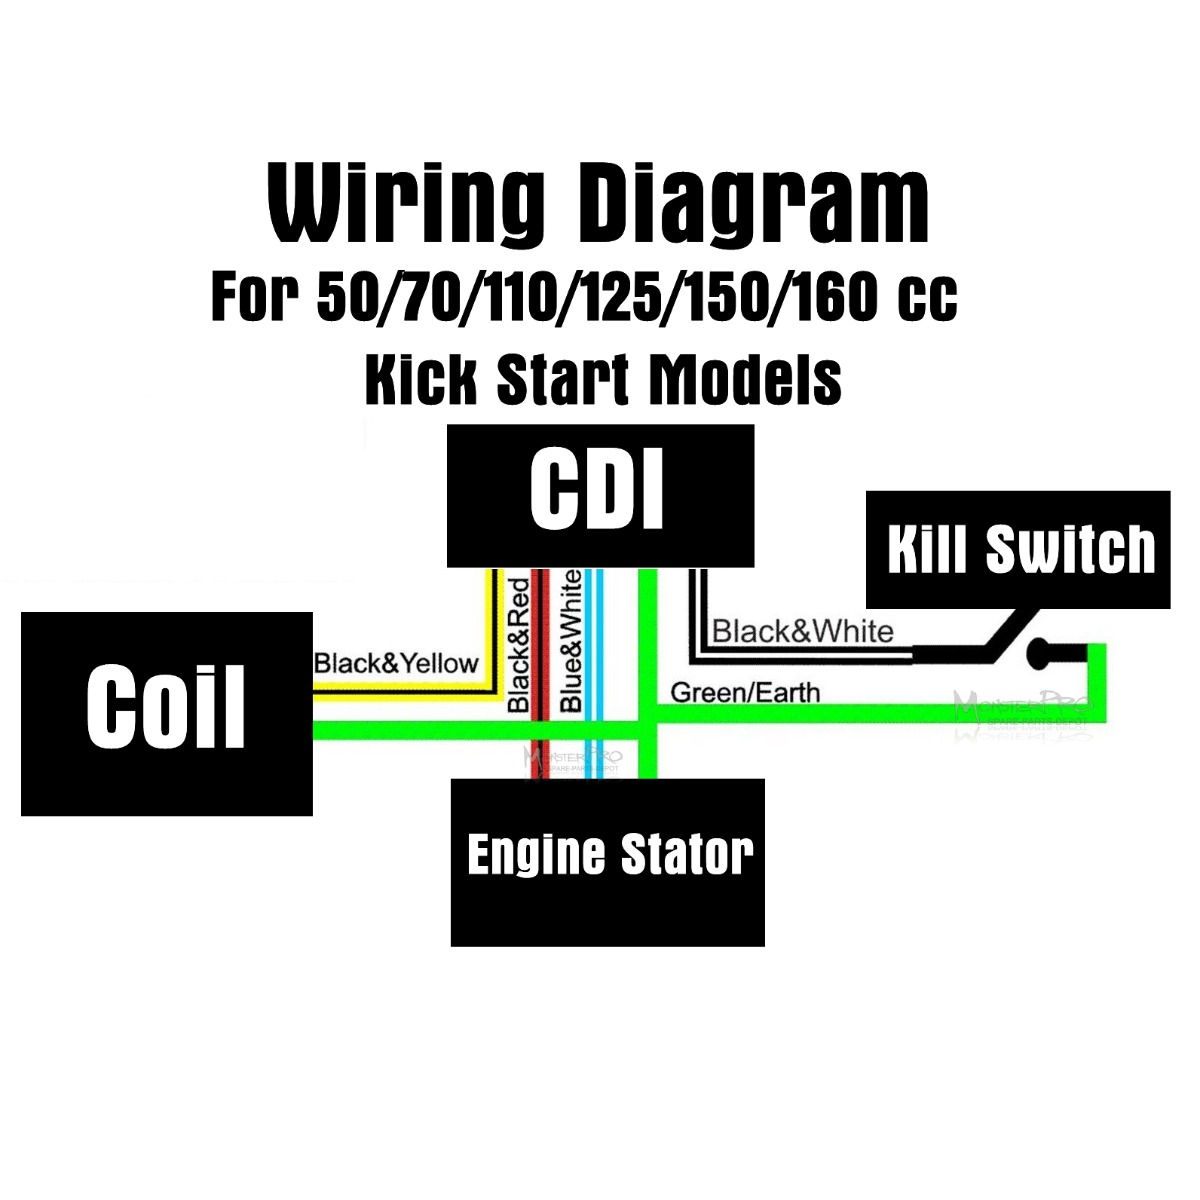 chinese dirt bike wiring diagram with 111452566544 on Tb 02parts together with 125cc Pit Bike Engine Diagram furthermore Coolster Atv 125cc Engine Diagram also 501518108477618651 in addition Honda Crf Wiring Diagram.